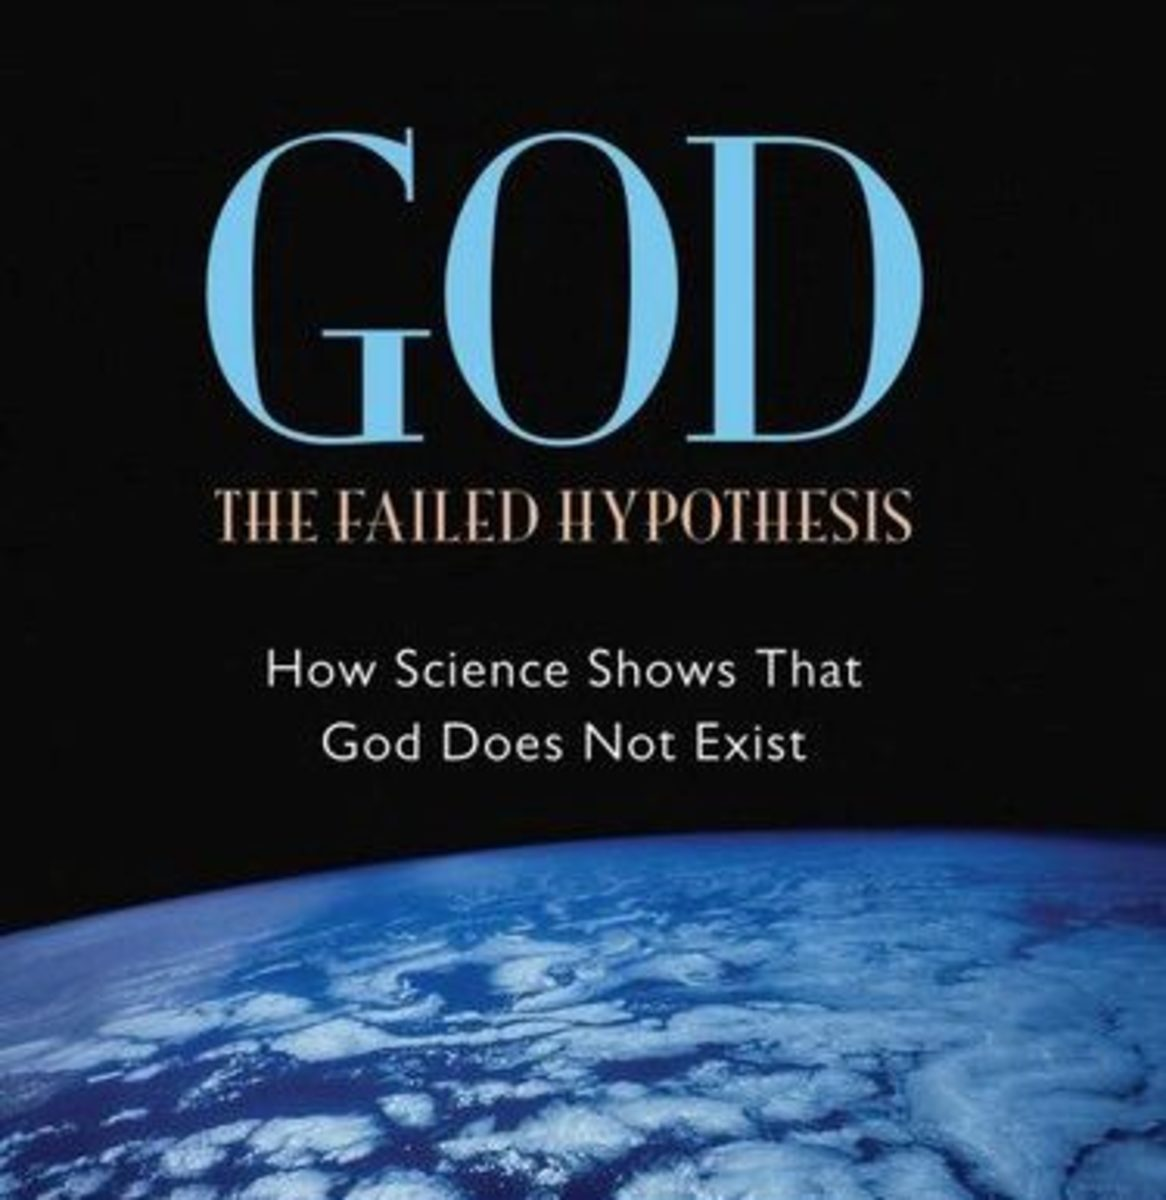 god-does-not-exist-it-is-impossible-for-a-god-to-exist